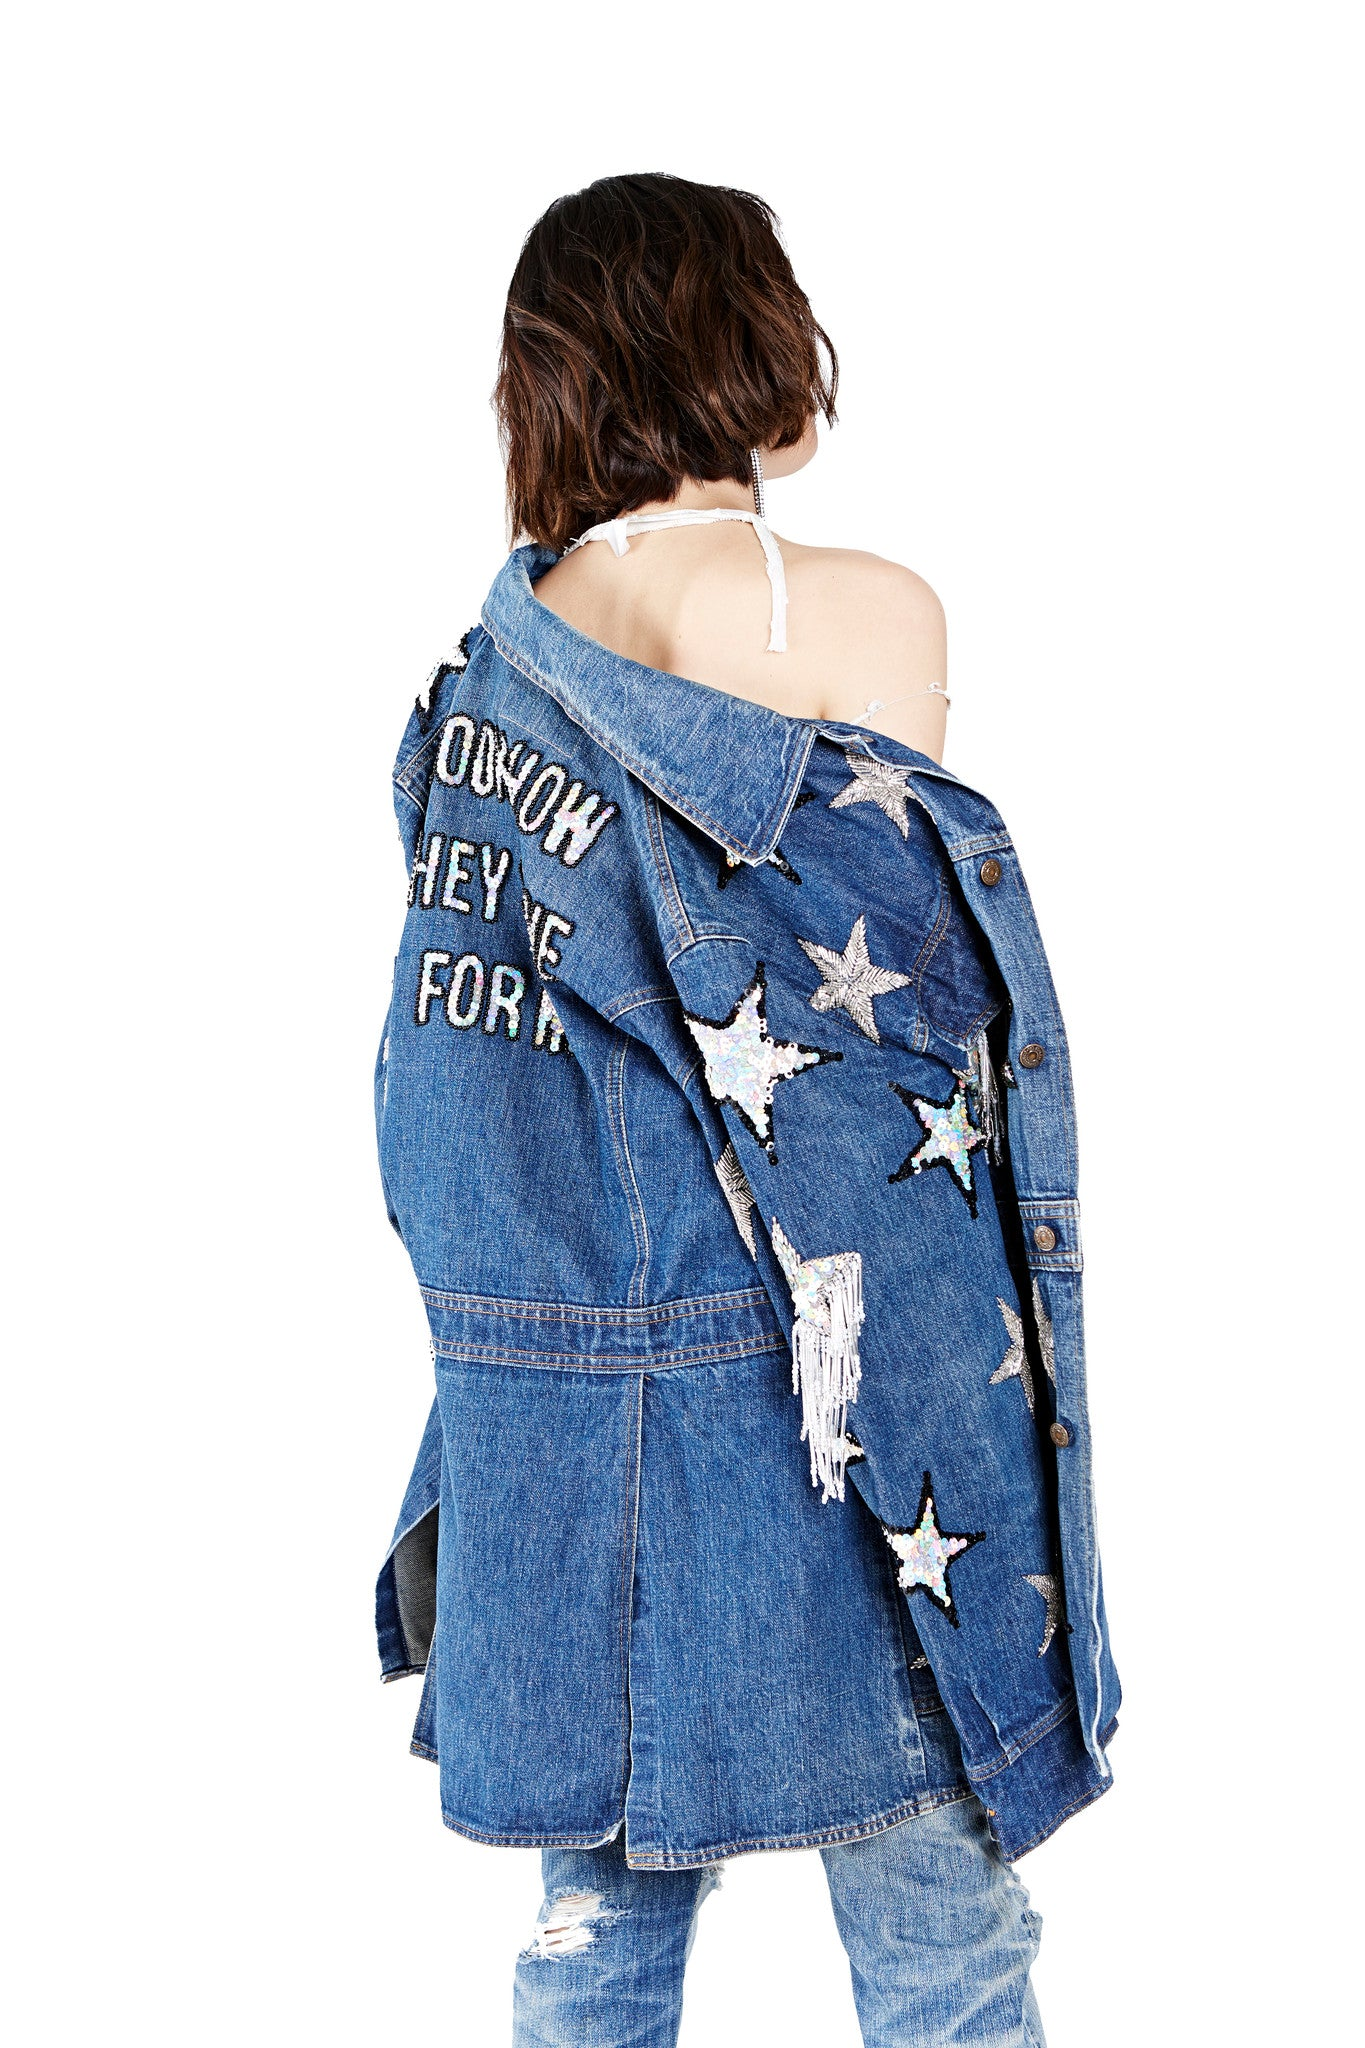 Shine for Me Denim Jacket - I LOVE DIY by Panida